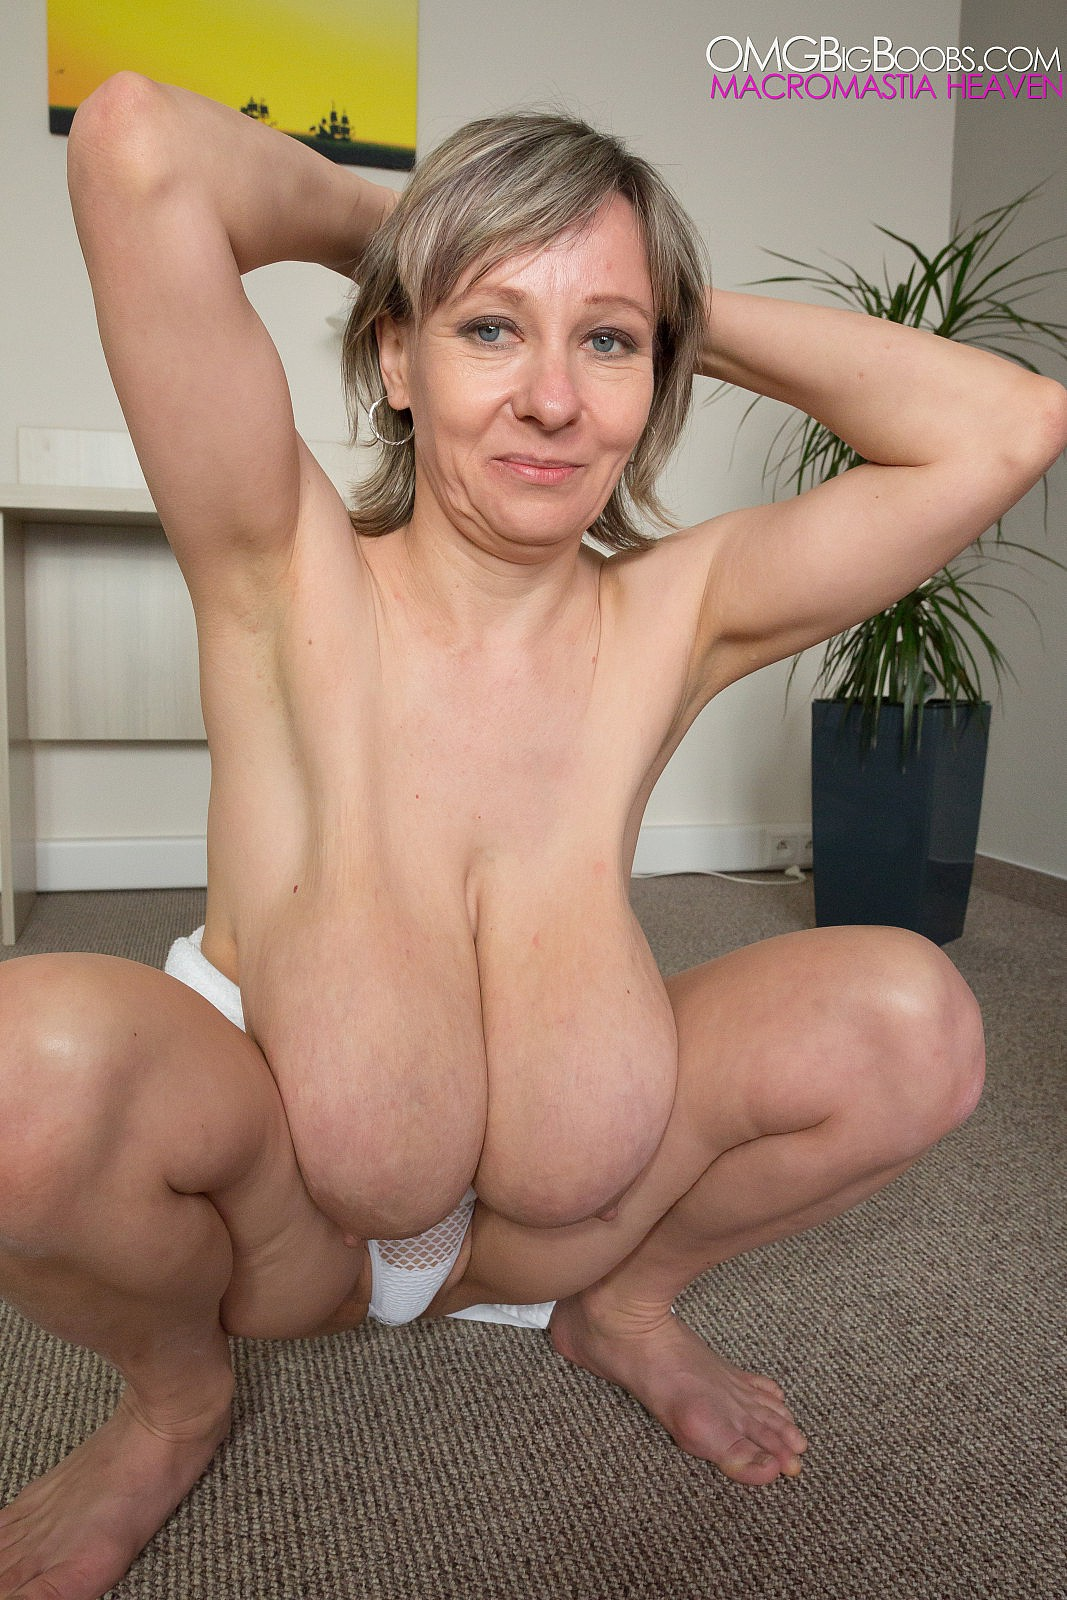 Mature woman with big boobs